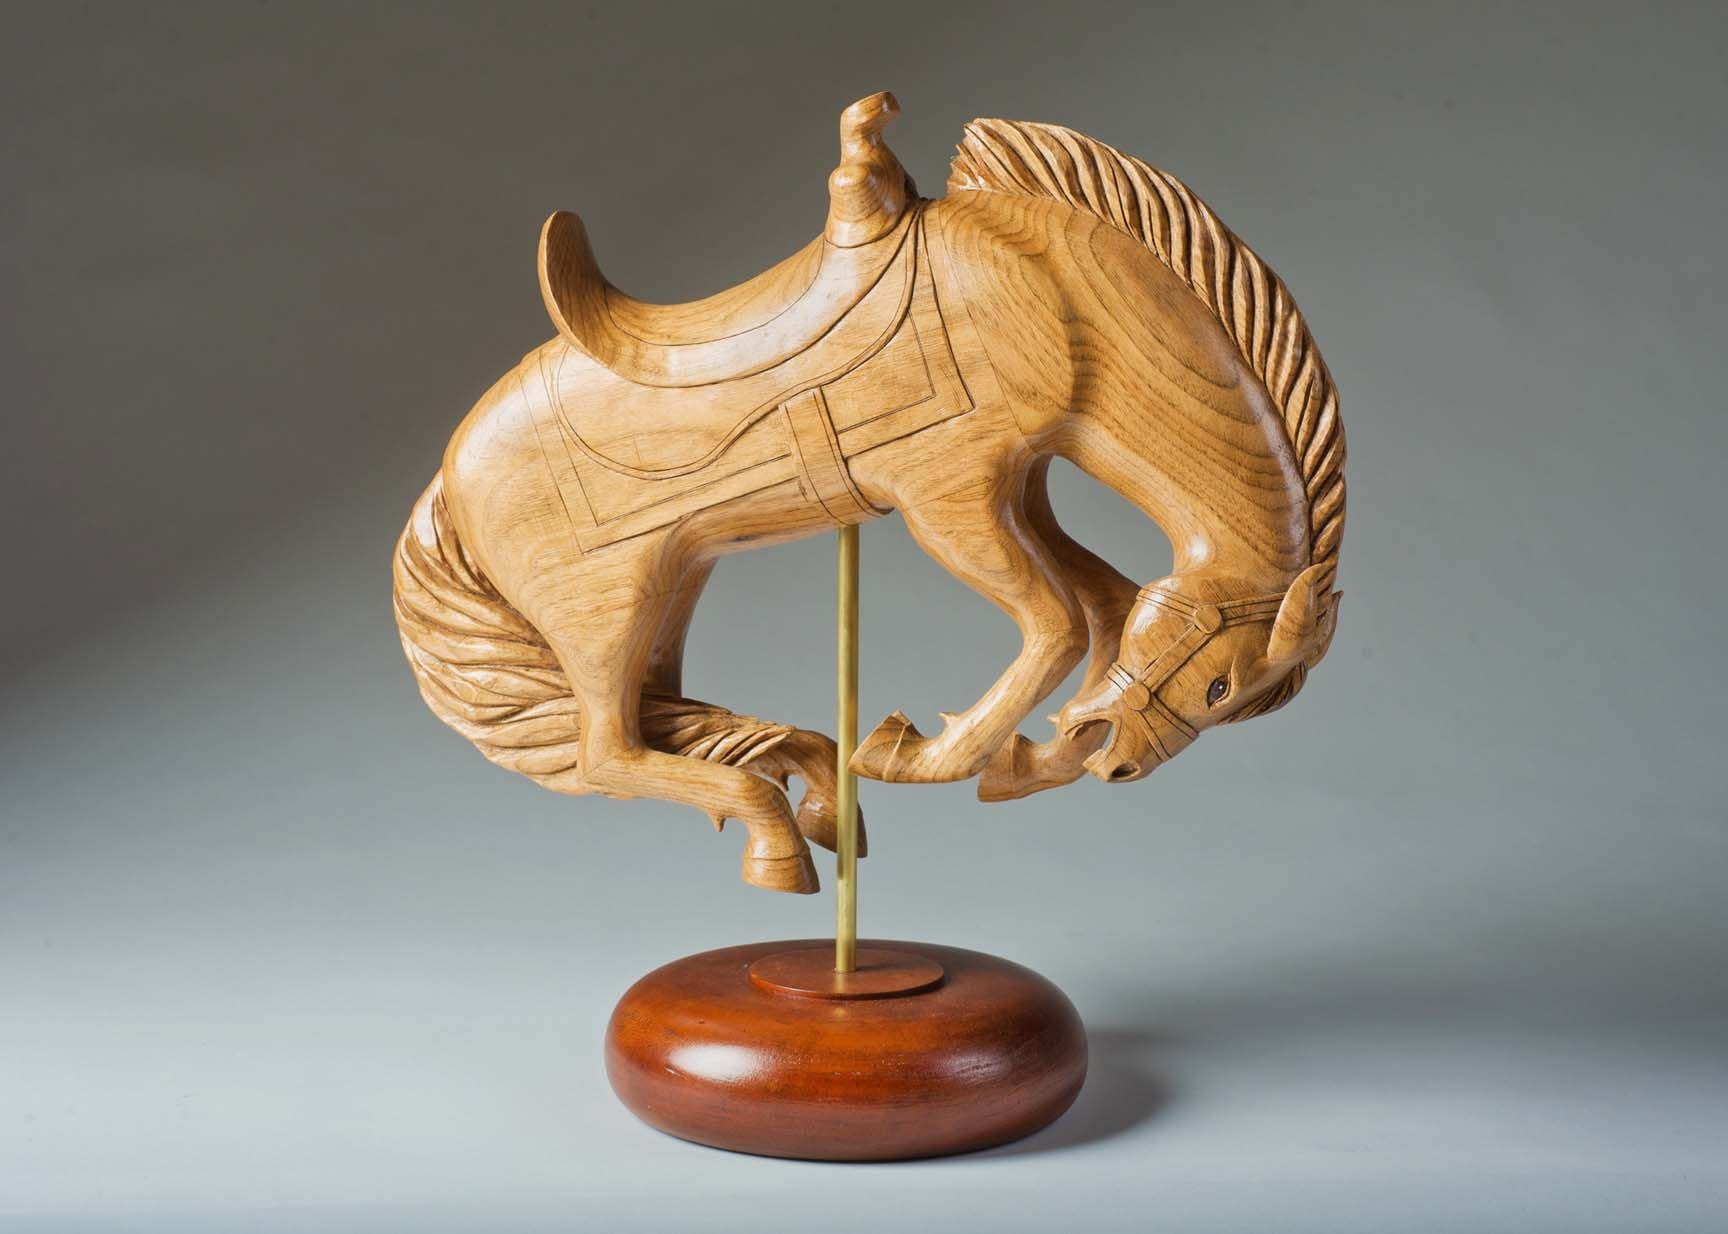 """1st in Class 405 - Carousel Animals/ Menagerie - all finishes    Jane Vriesacker, Reedsburg, WI    Bronco    15"""" x 8"""" x 15"""""""